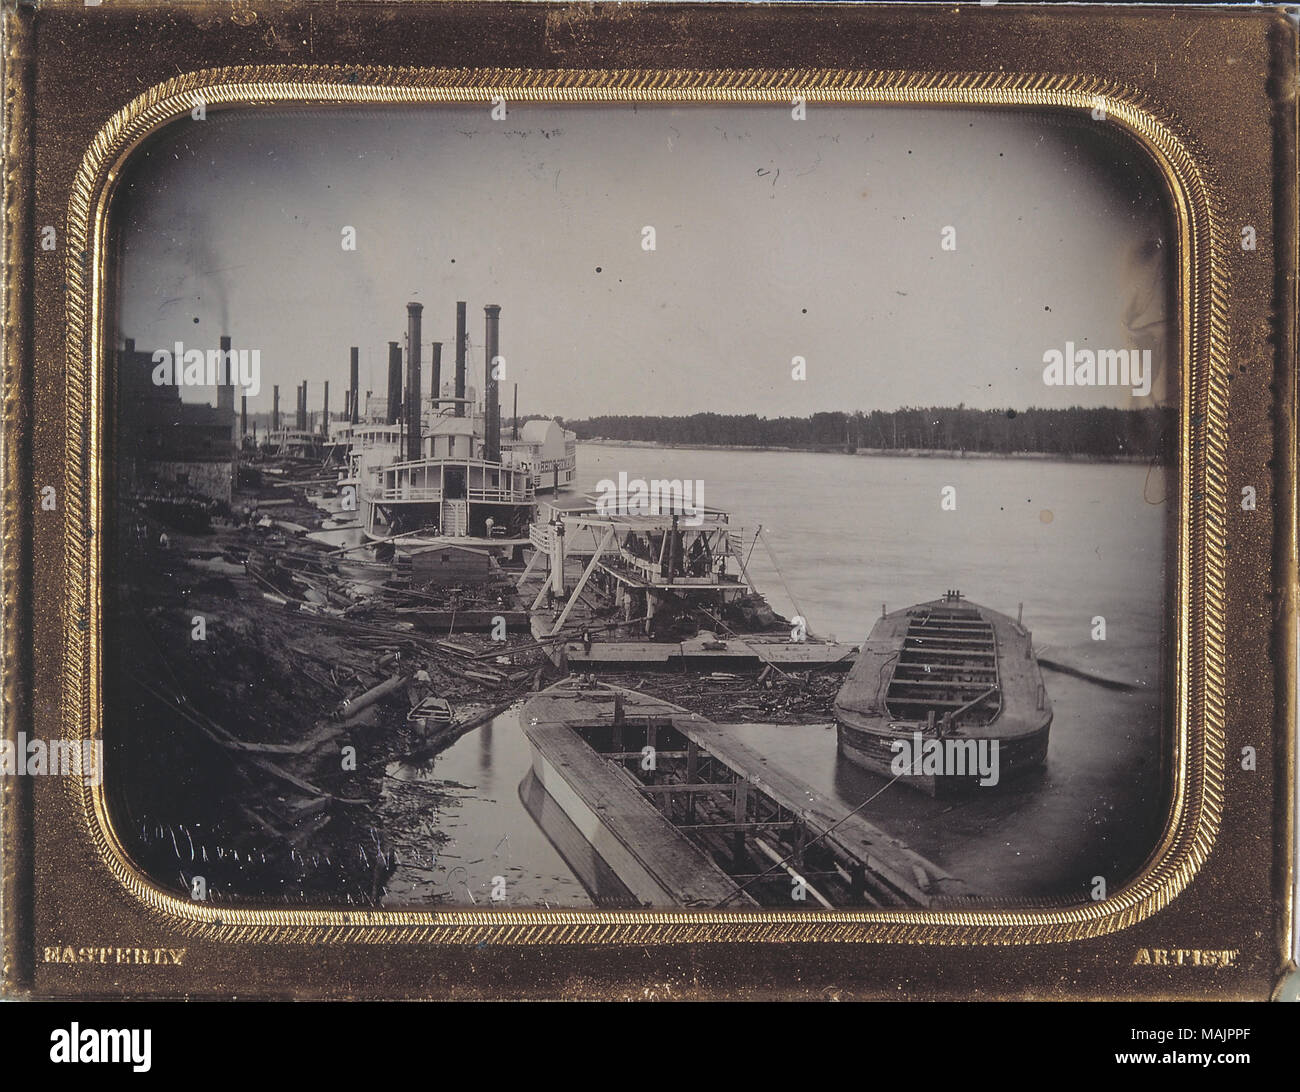 A view of the dry docks along the St. Louis River Front with the Mississippi River in the background. A boy with a small boats can be seen on the shore, and many large steamboats are docked. Some men can be seen on the ships, and also some architecture can be seen in the background off to the right. Inscribed in the bottom-left corner is 'View on the Mississippi River'. The frame around the daguerreotype has 'Easterly' engraved in its lower-left corner and 'Artist' engraved in the lower right. Title: Dry Docks, St. Louis River Front.  . between circa 1852 and circa 1853. Thomas M. Easterly Stock Photo